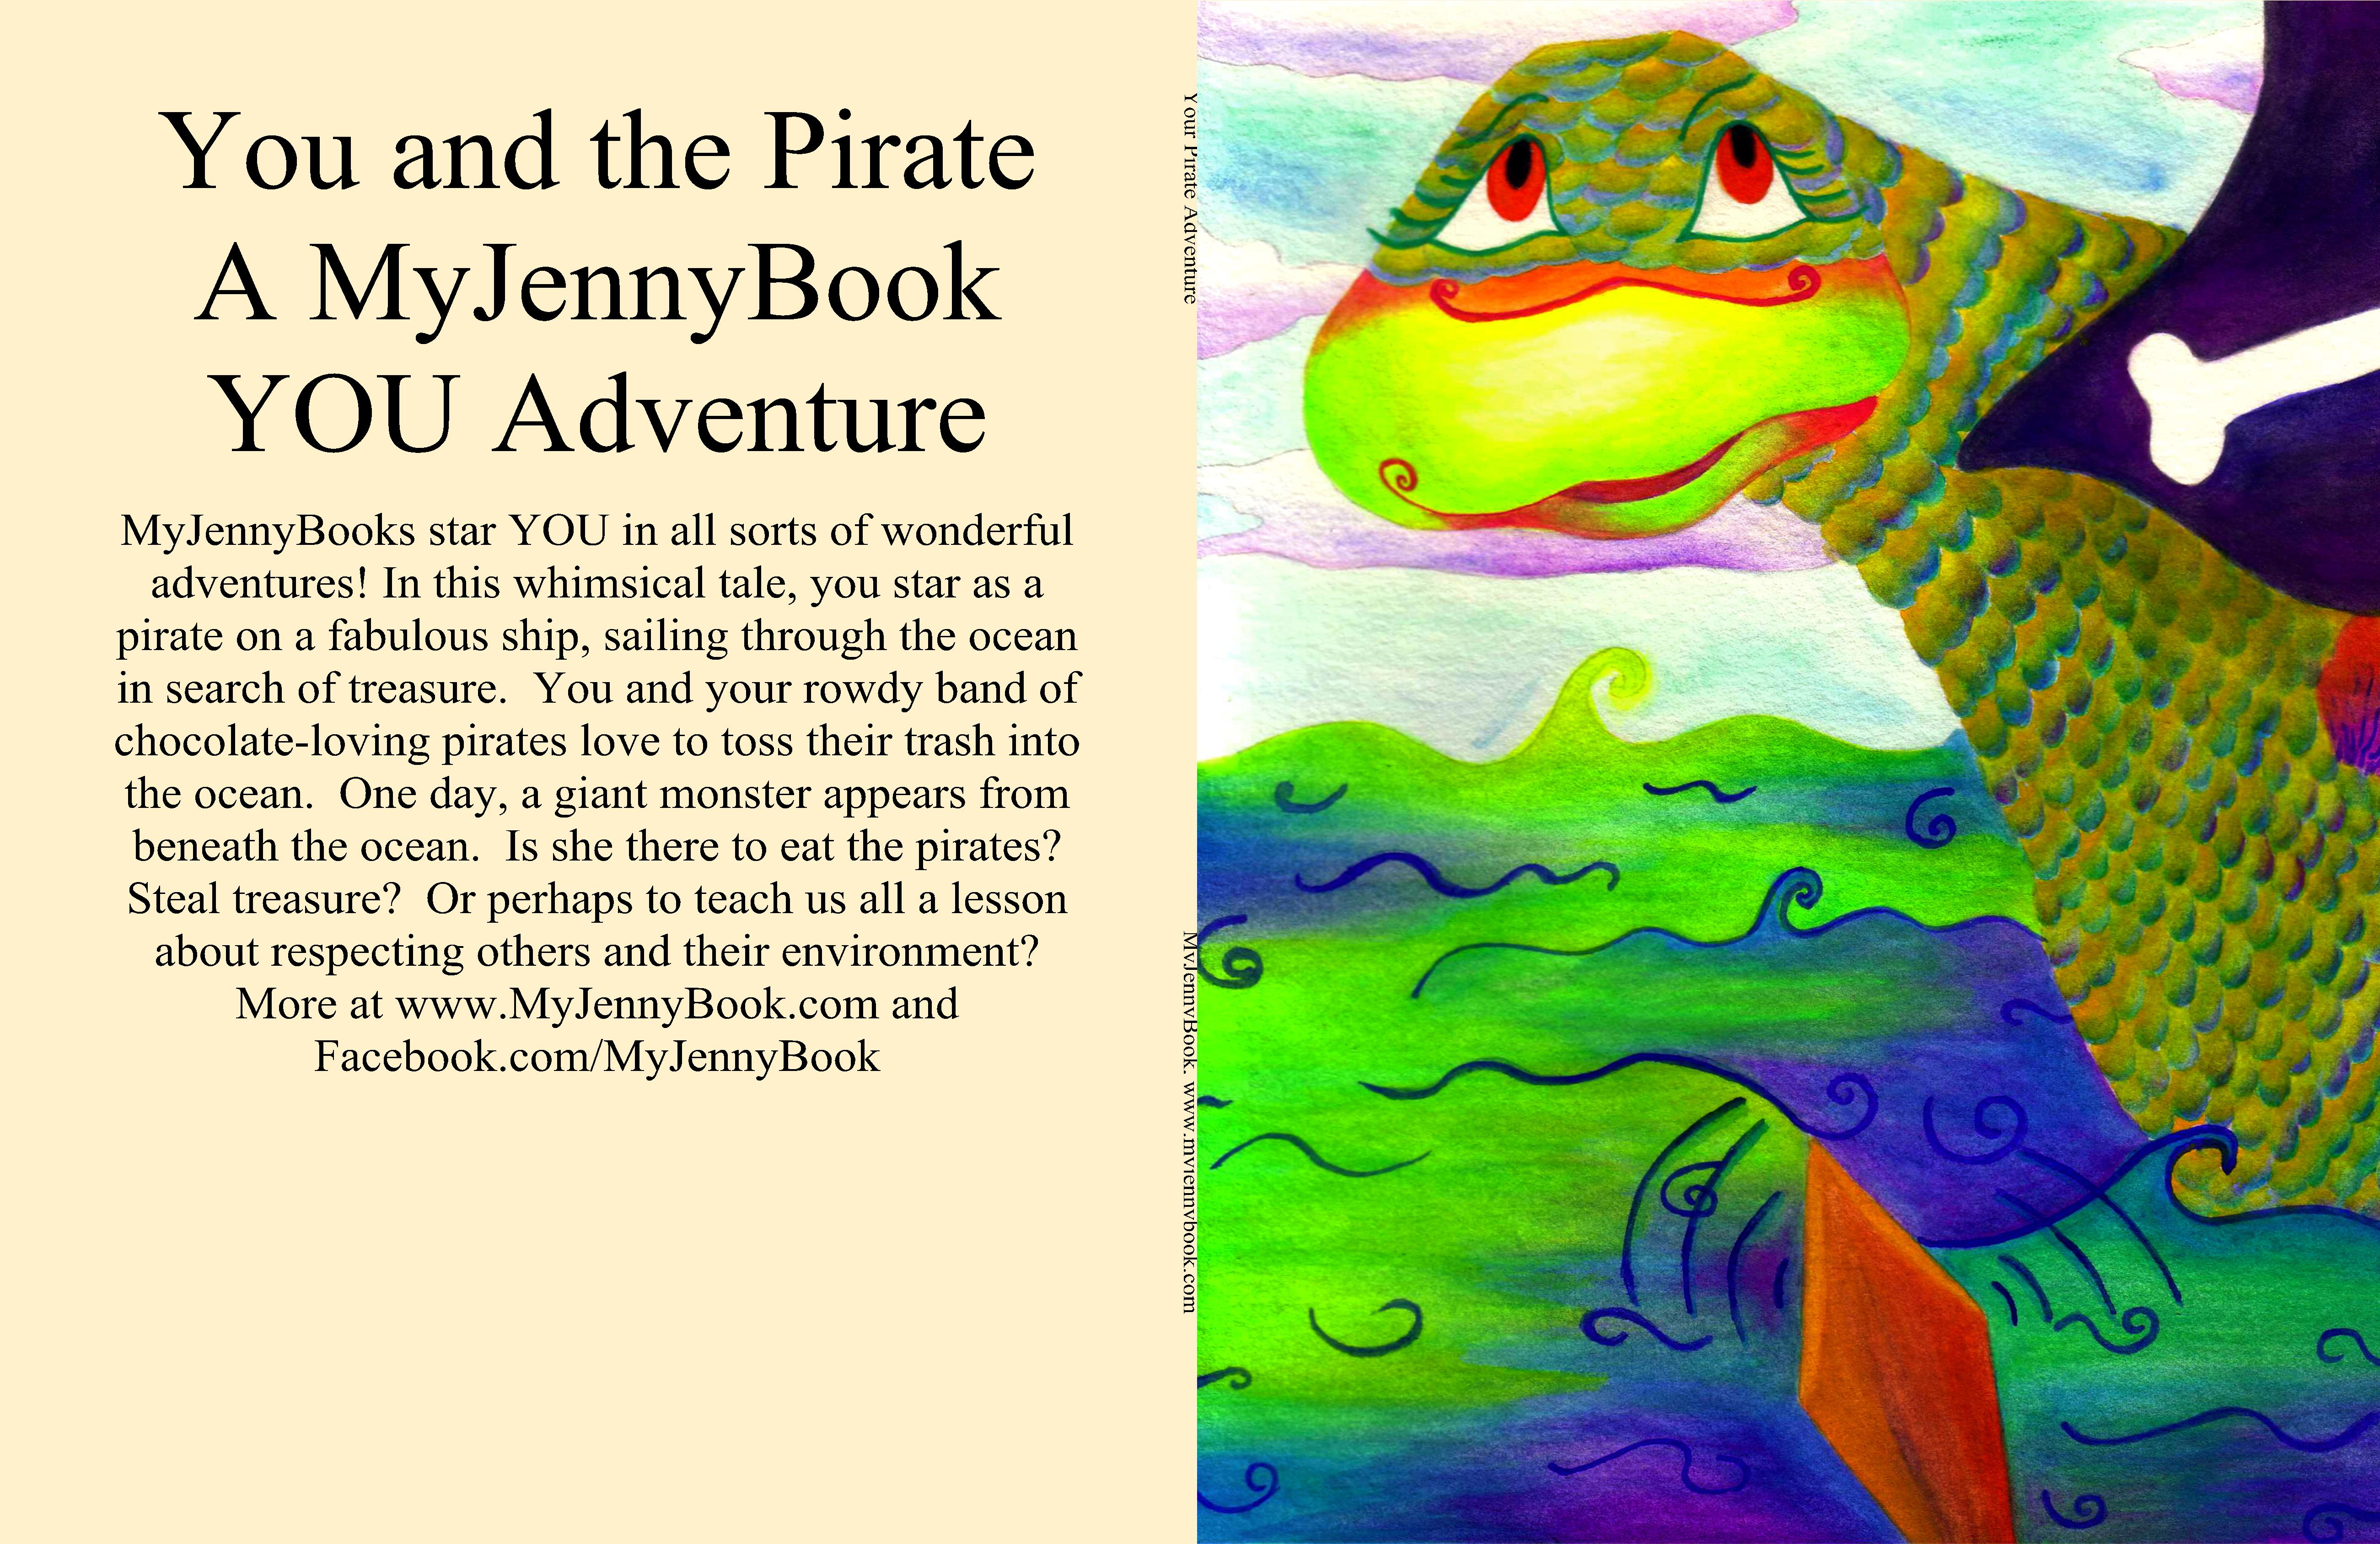 Your Pirate Adventure cover image